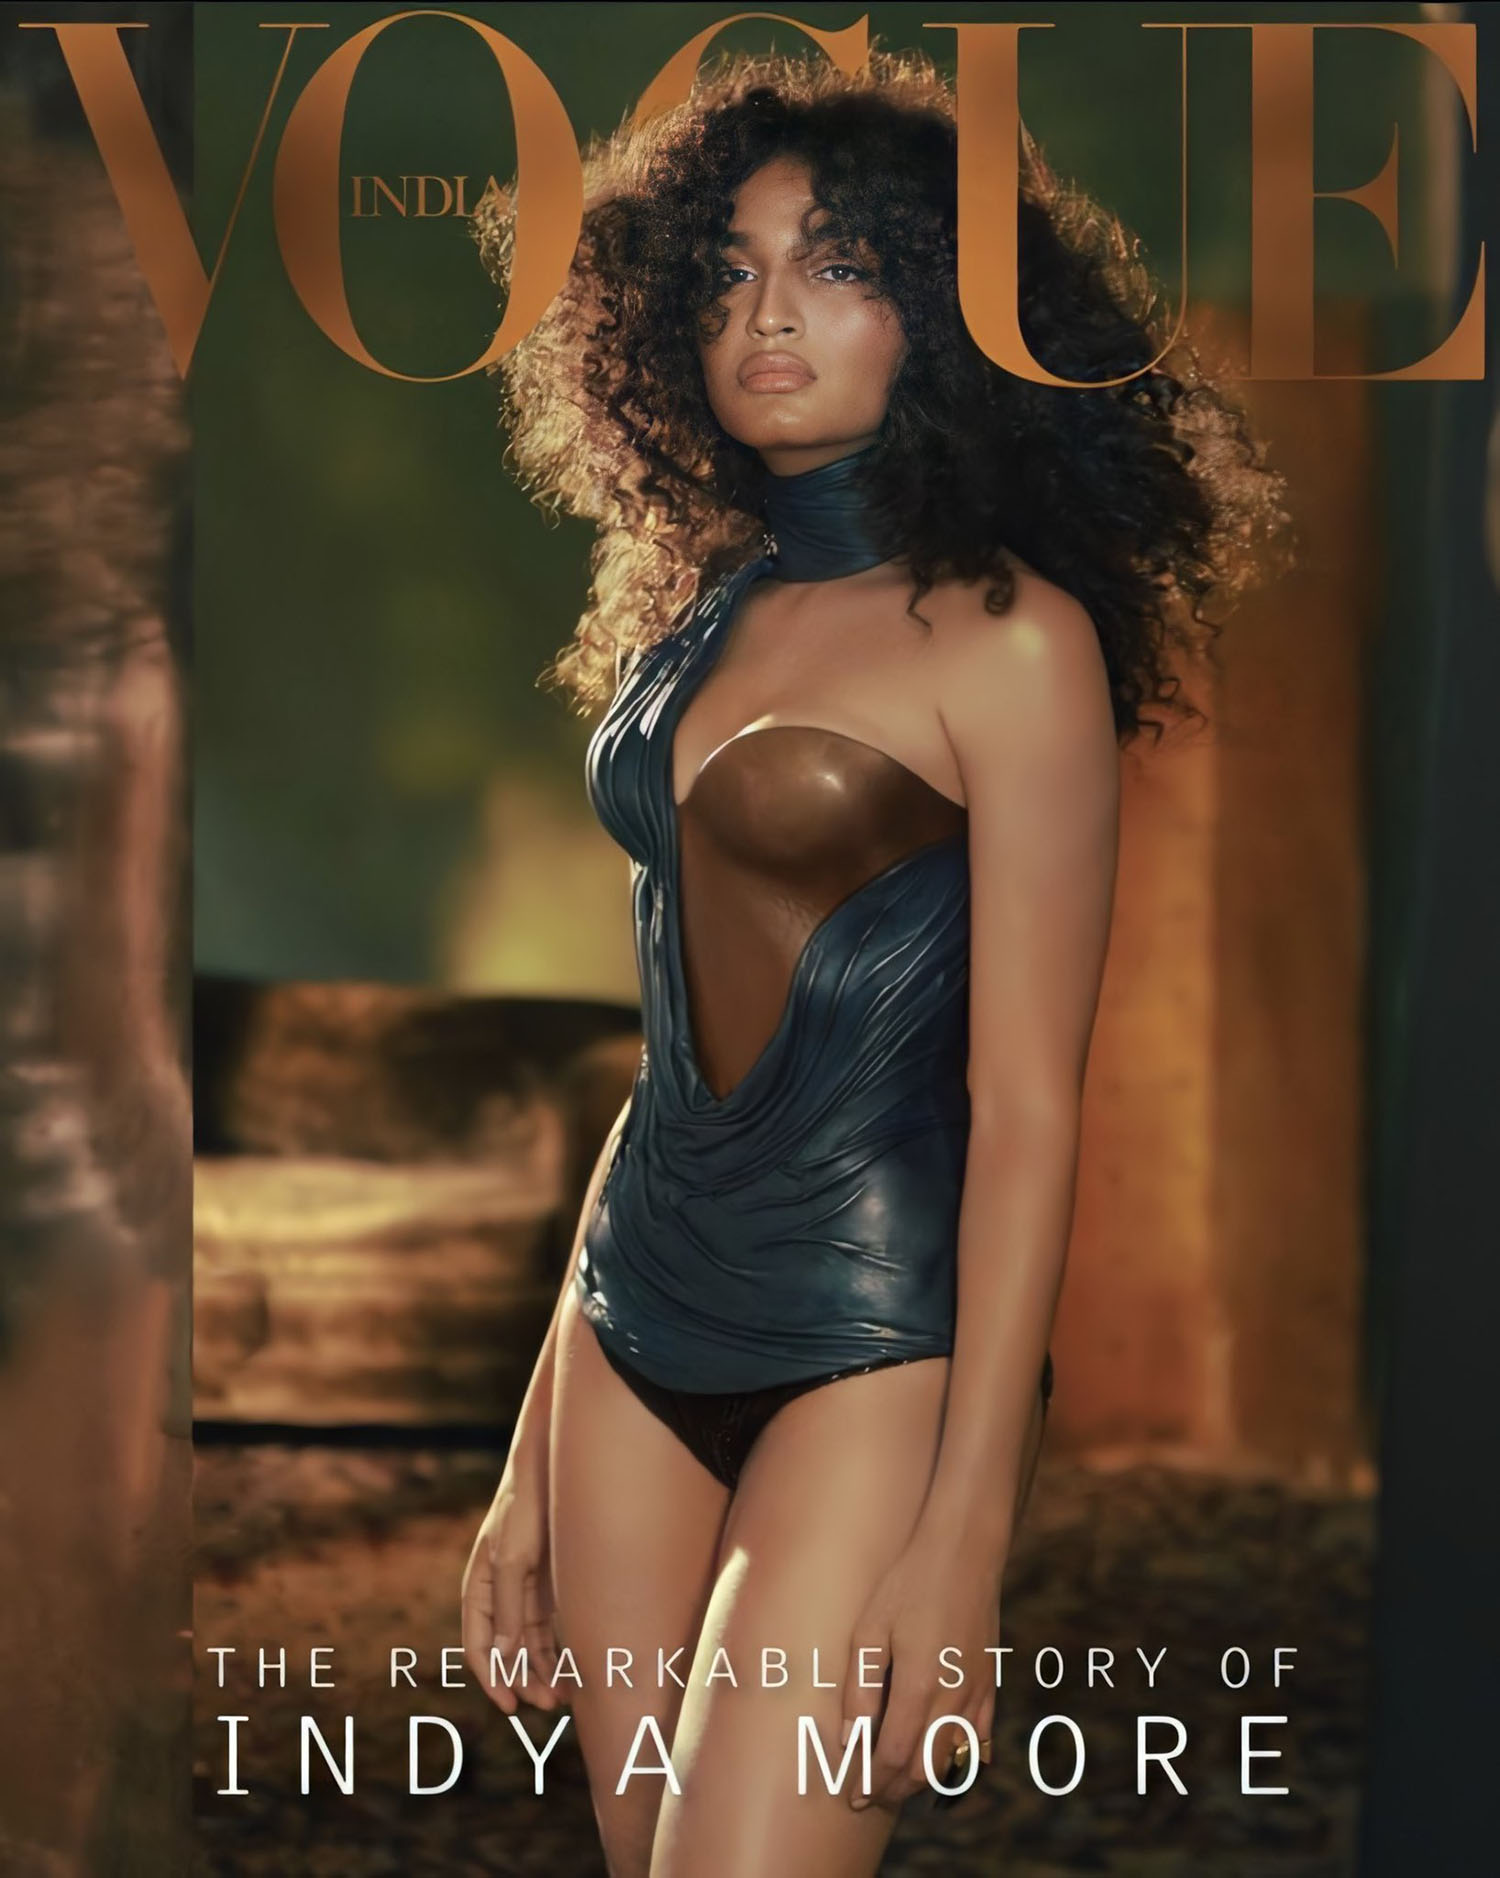 Indya Moore covers Vogue India October 2020 Digital Edition by Greg Swales